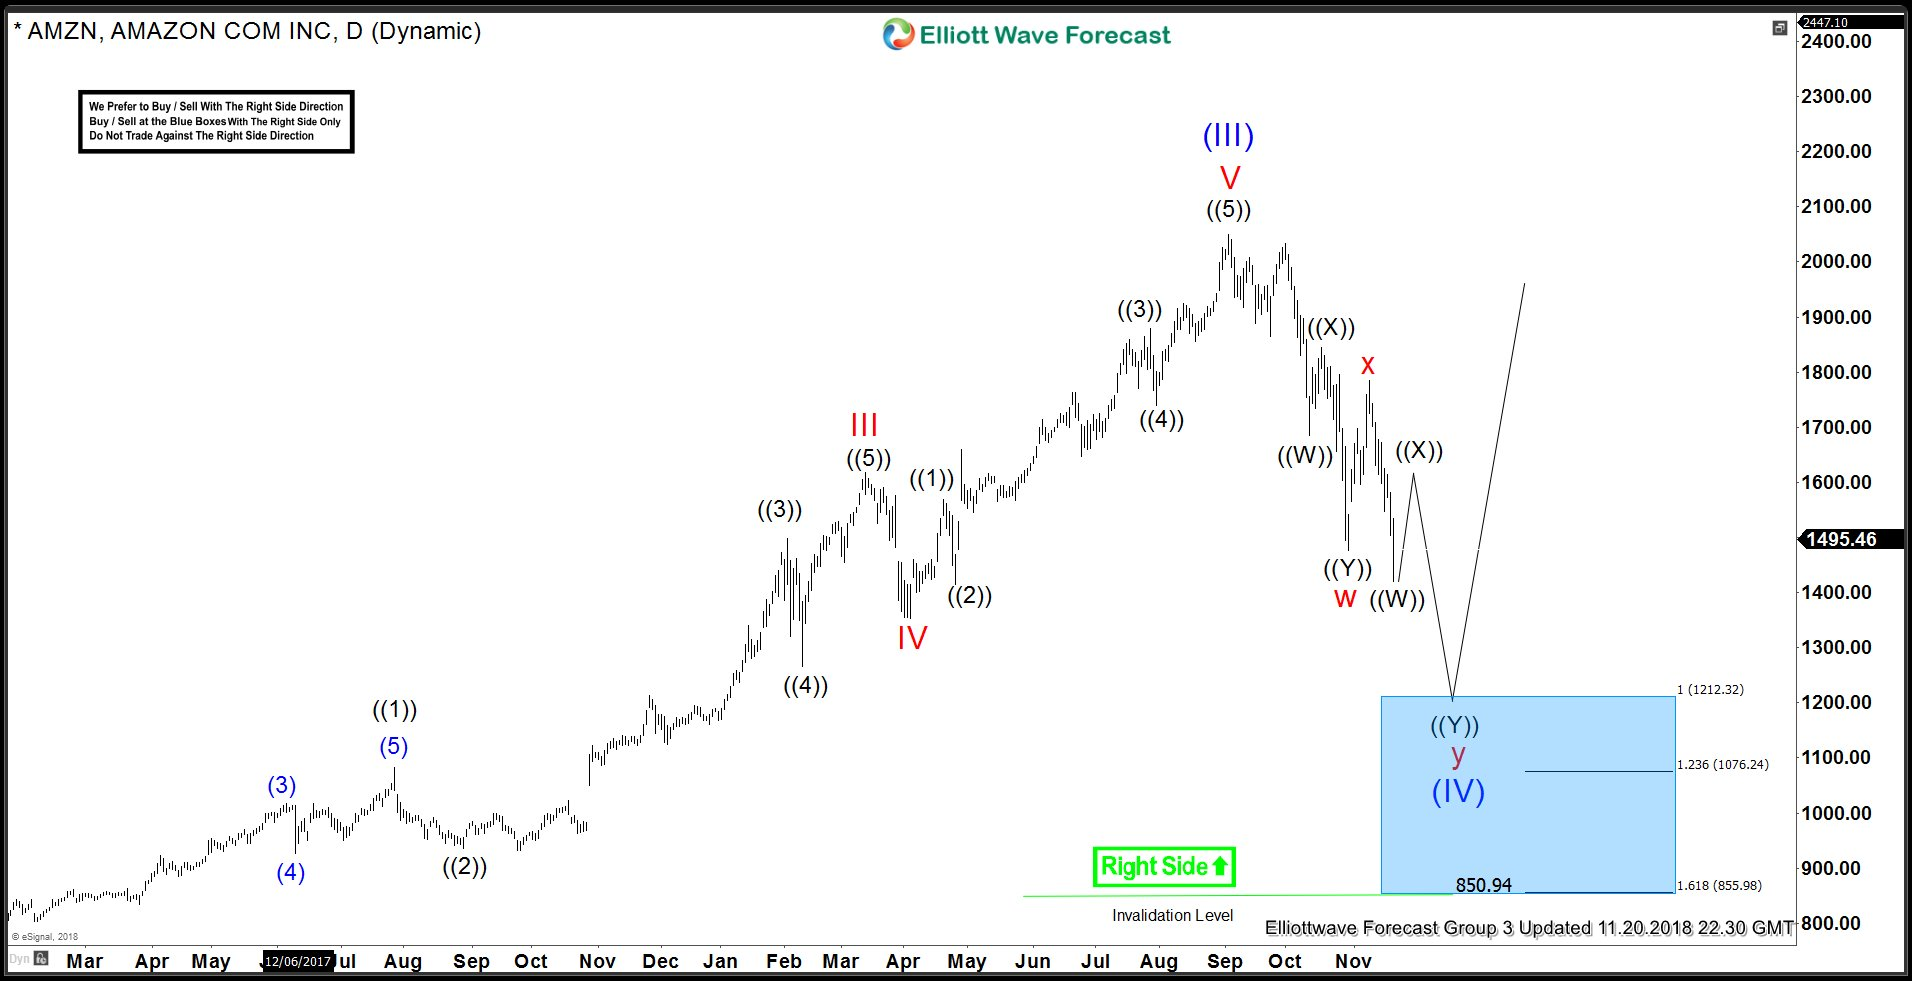 Amazon (AMZN) Elliott Wave Analysis - Daily Time Frame